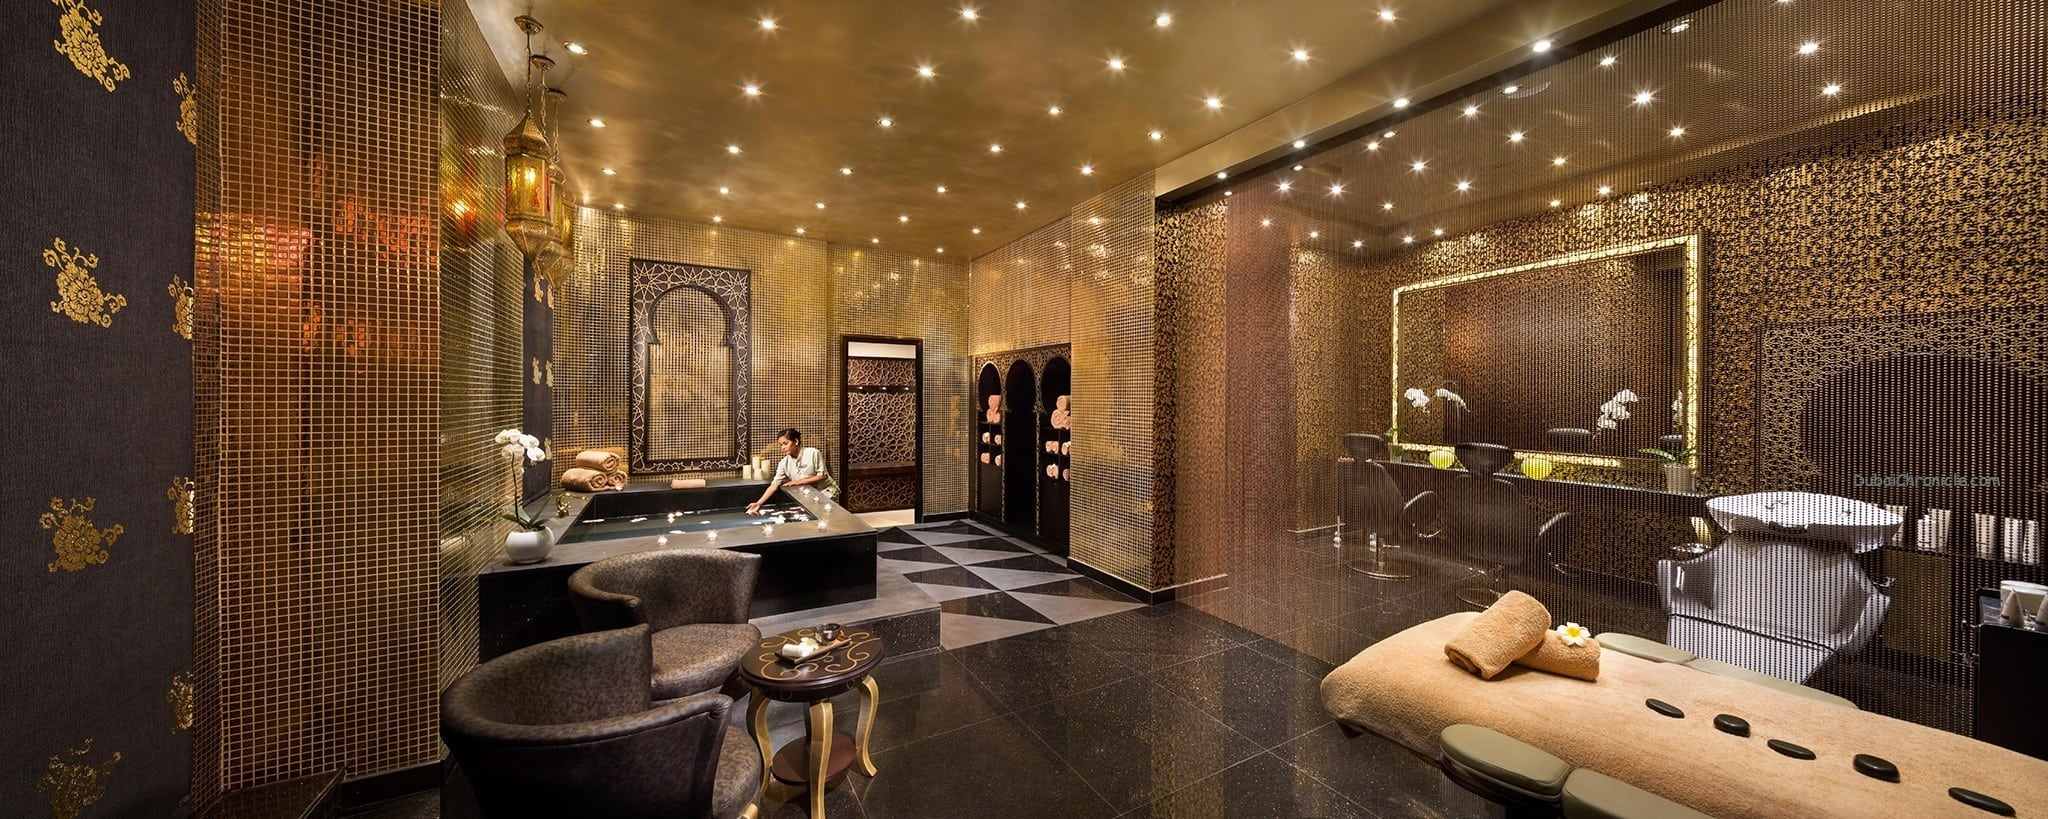 Ajman Palace Hotel Launches Amazing Summer Spa Specials